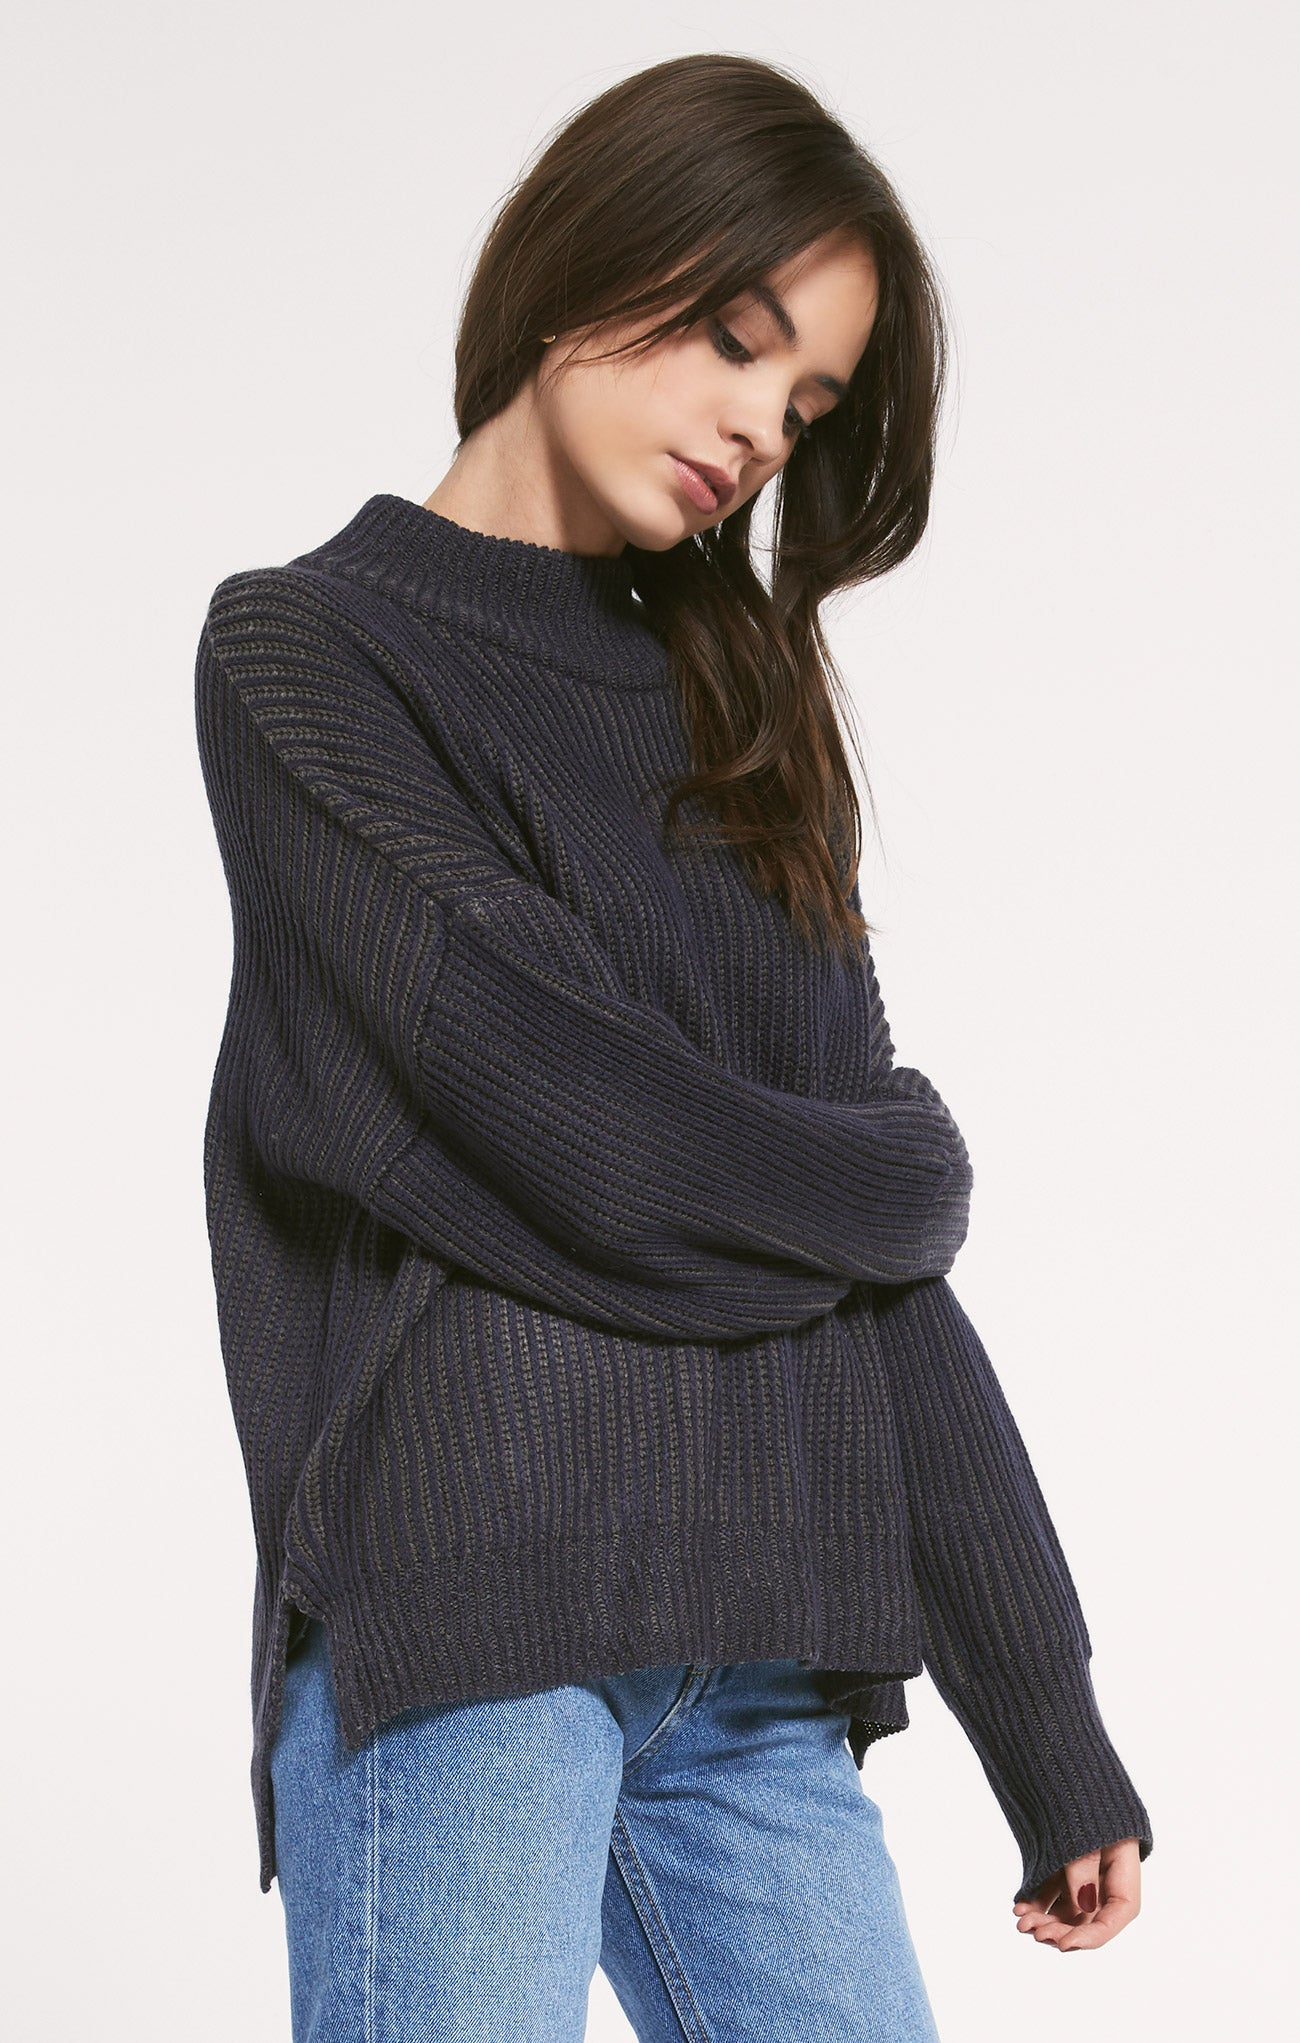 Sweaters Irwin Sweater by Rag Poets Mood Indigo